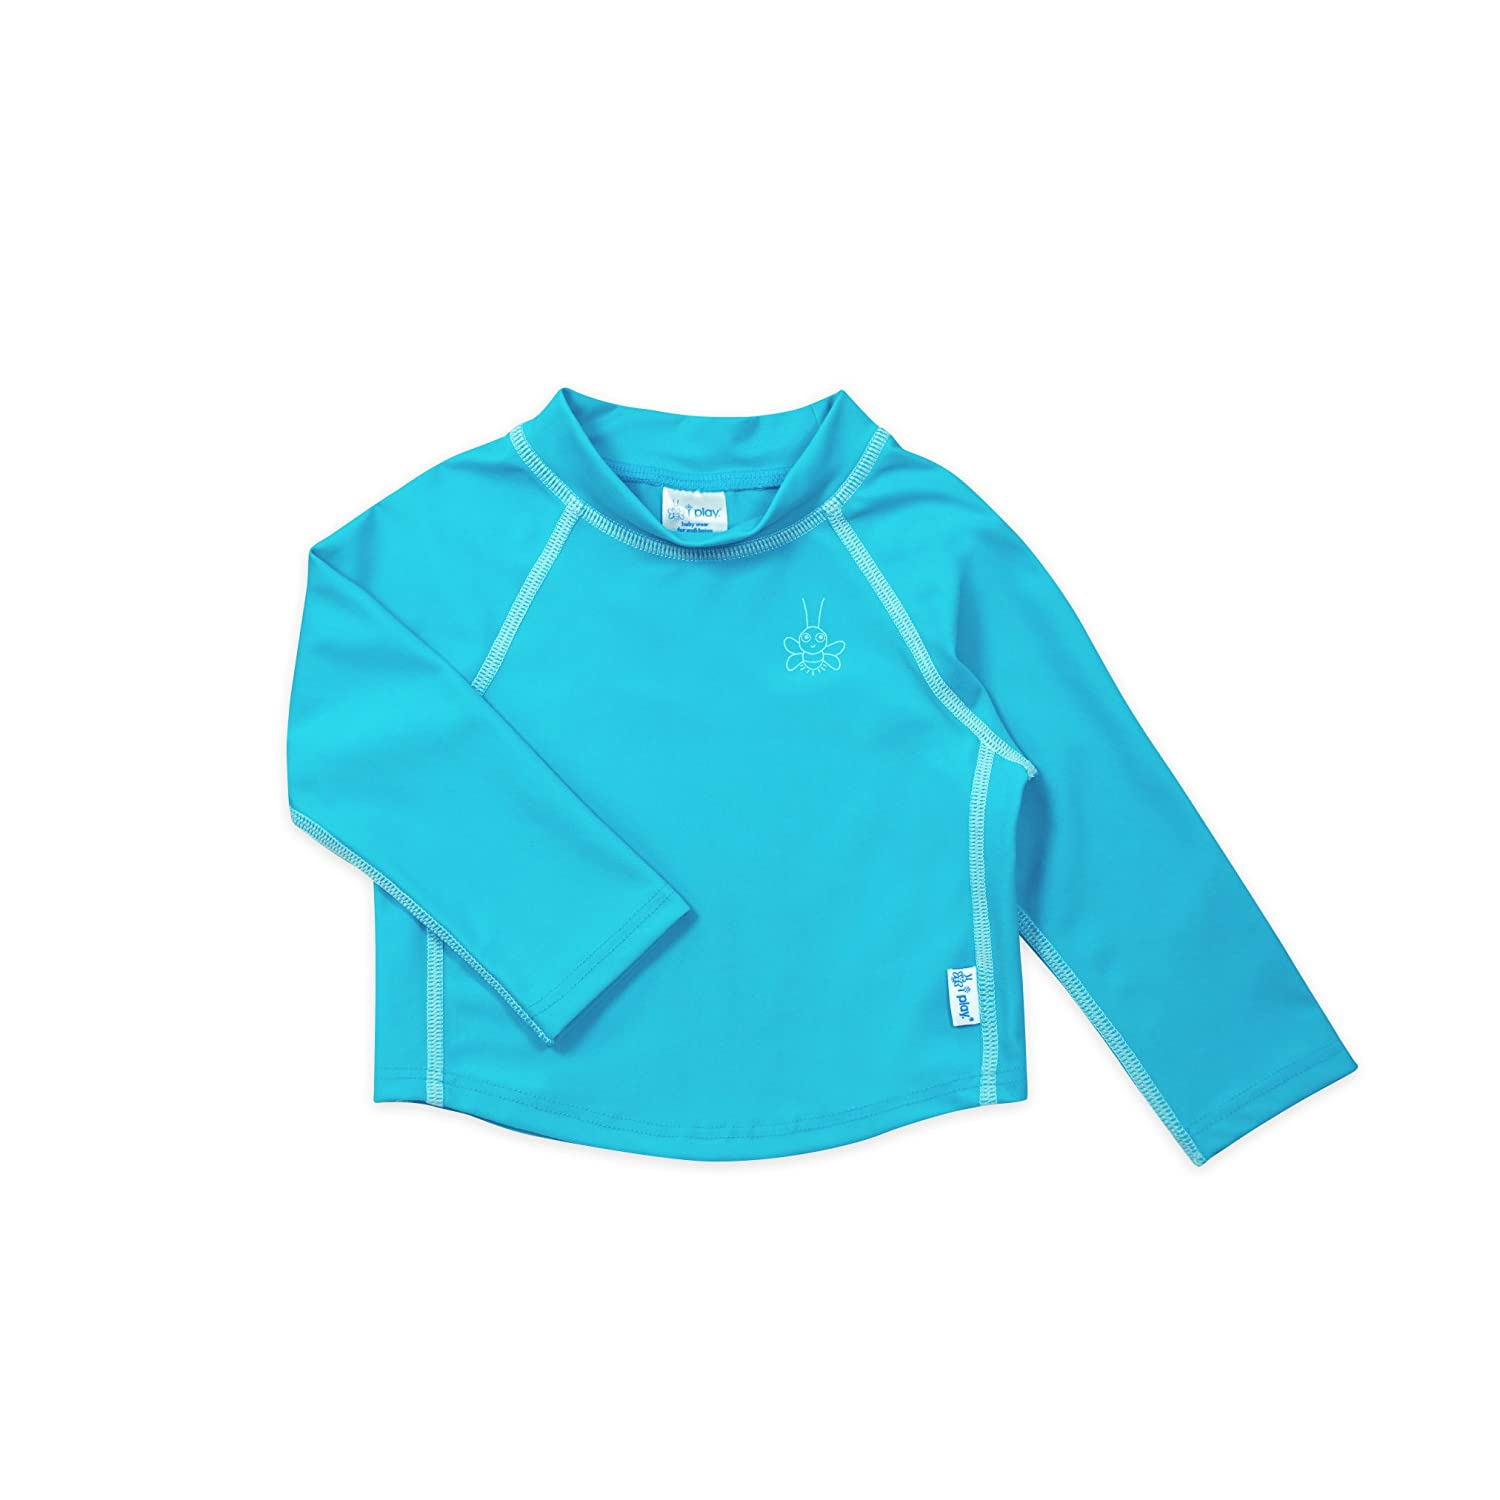 i play. Long Sleeve Rashguard Shirt | All-Day UPF 50  Sun Protection—Wet or Dry